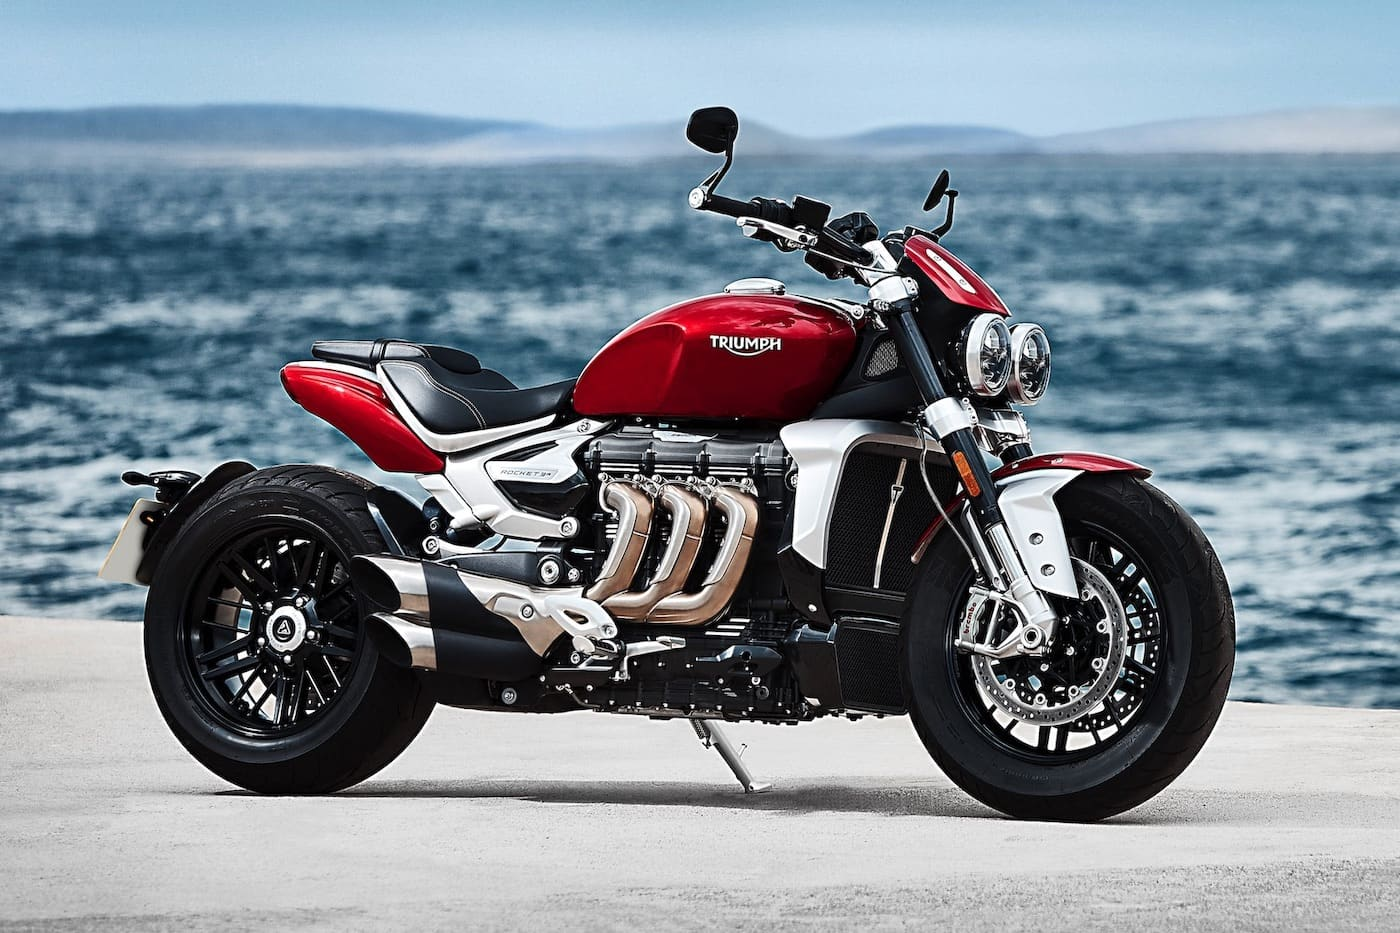 The triumph rocket 3, non-TFC, still a badass motorcycle for 2020